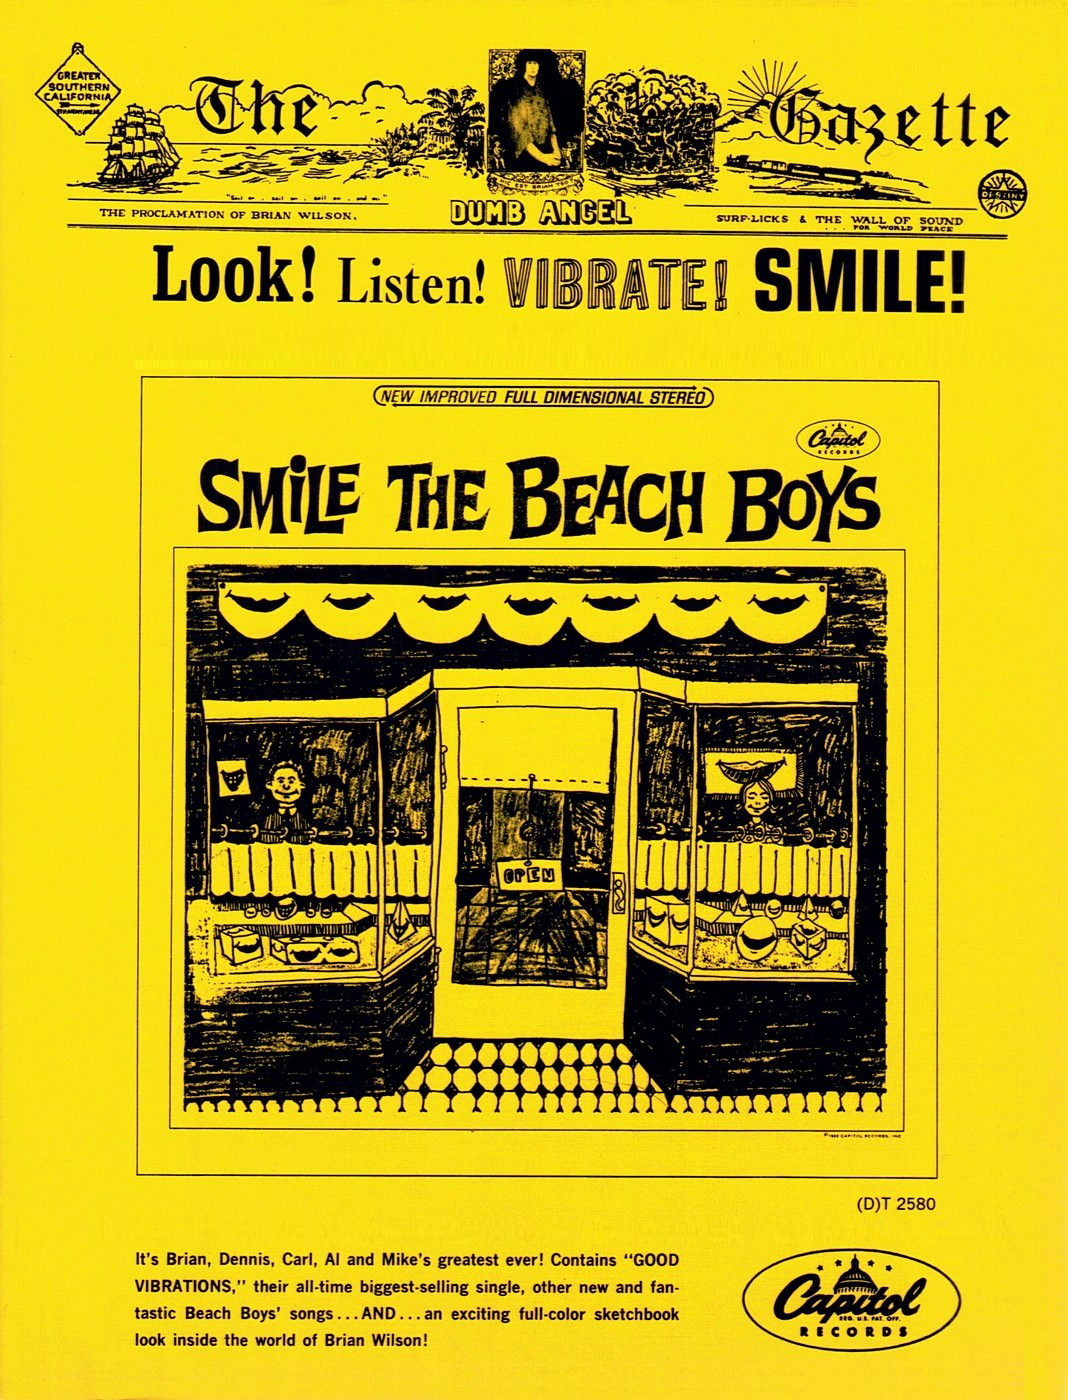 Look! Listen! Vibrate! Smile! cover